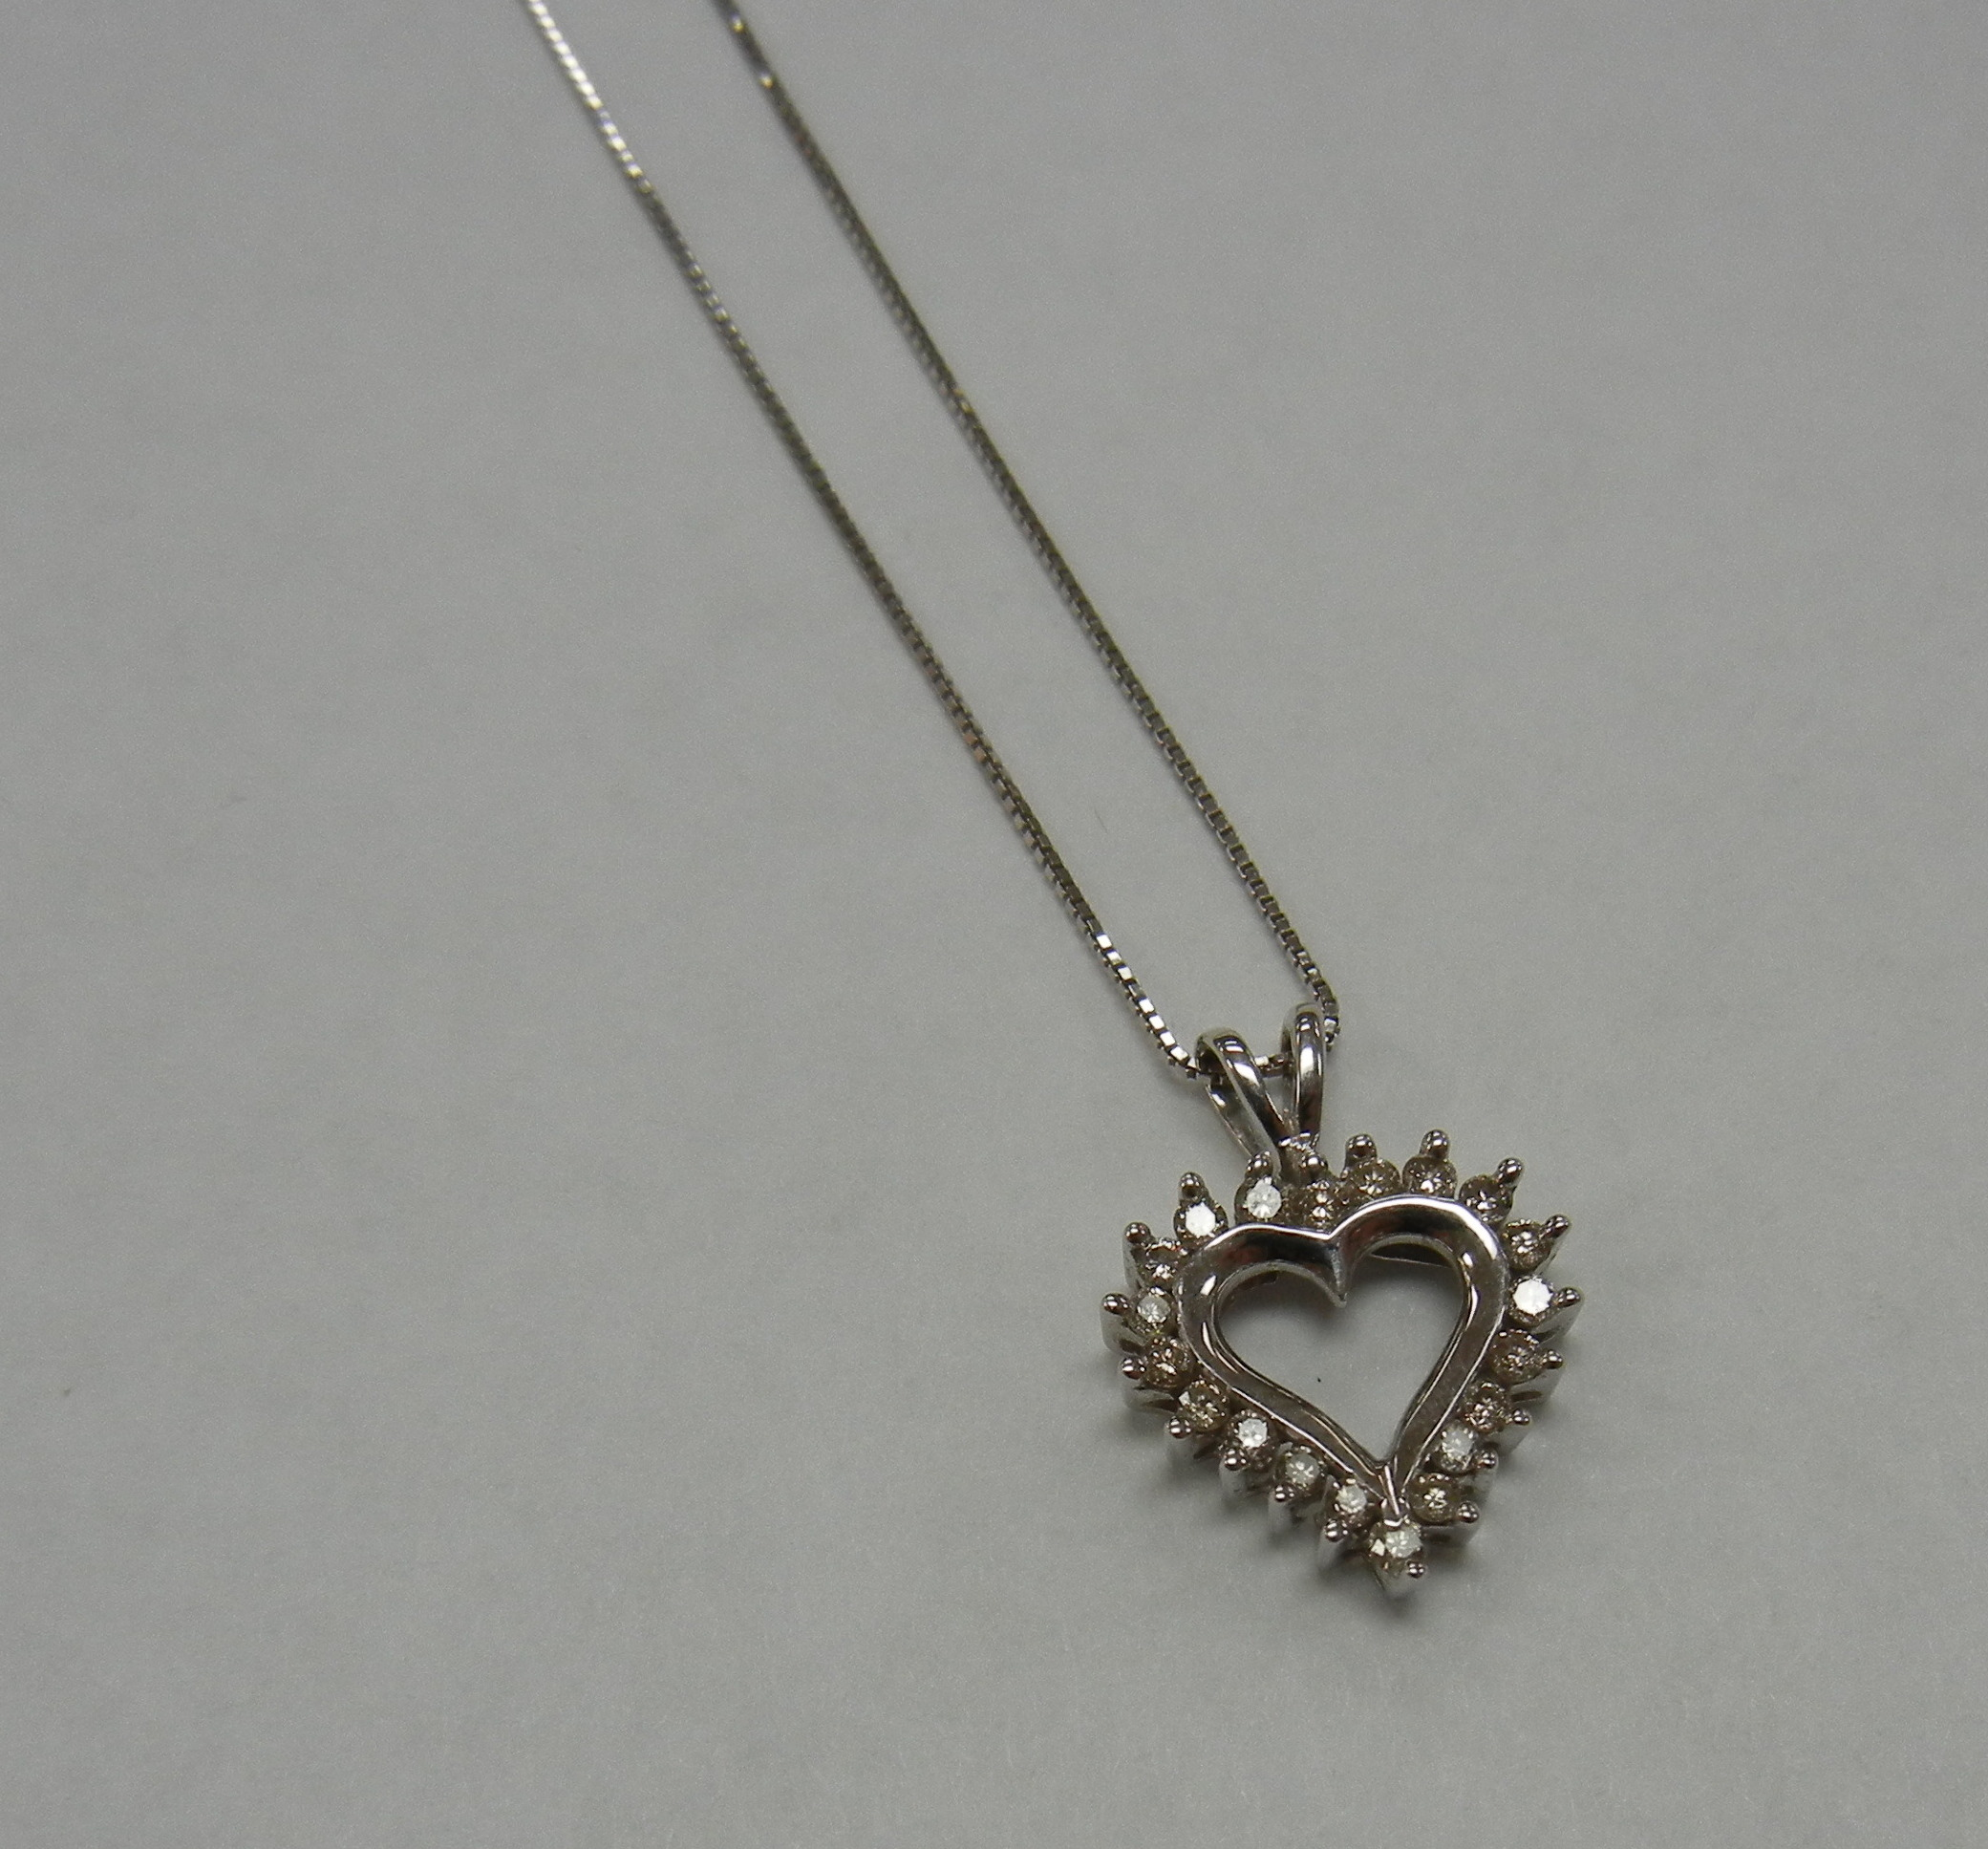 14 KT WHITE GOLD HEART CHARM WITH THIN BOX CHAIN